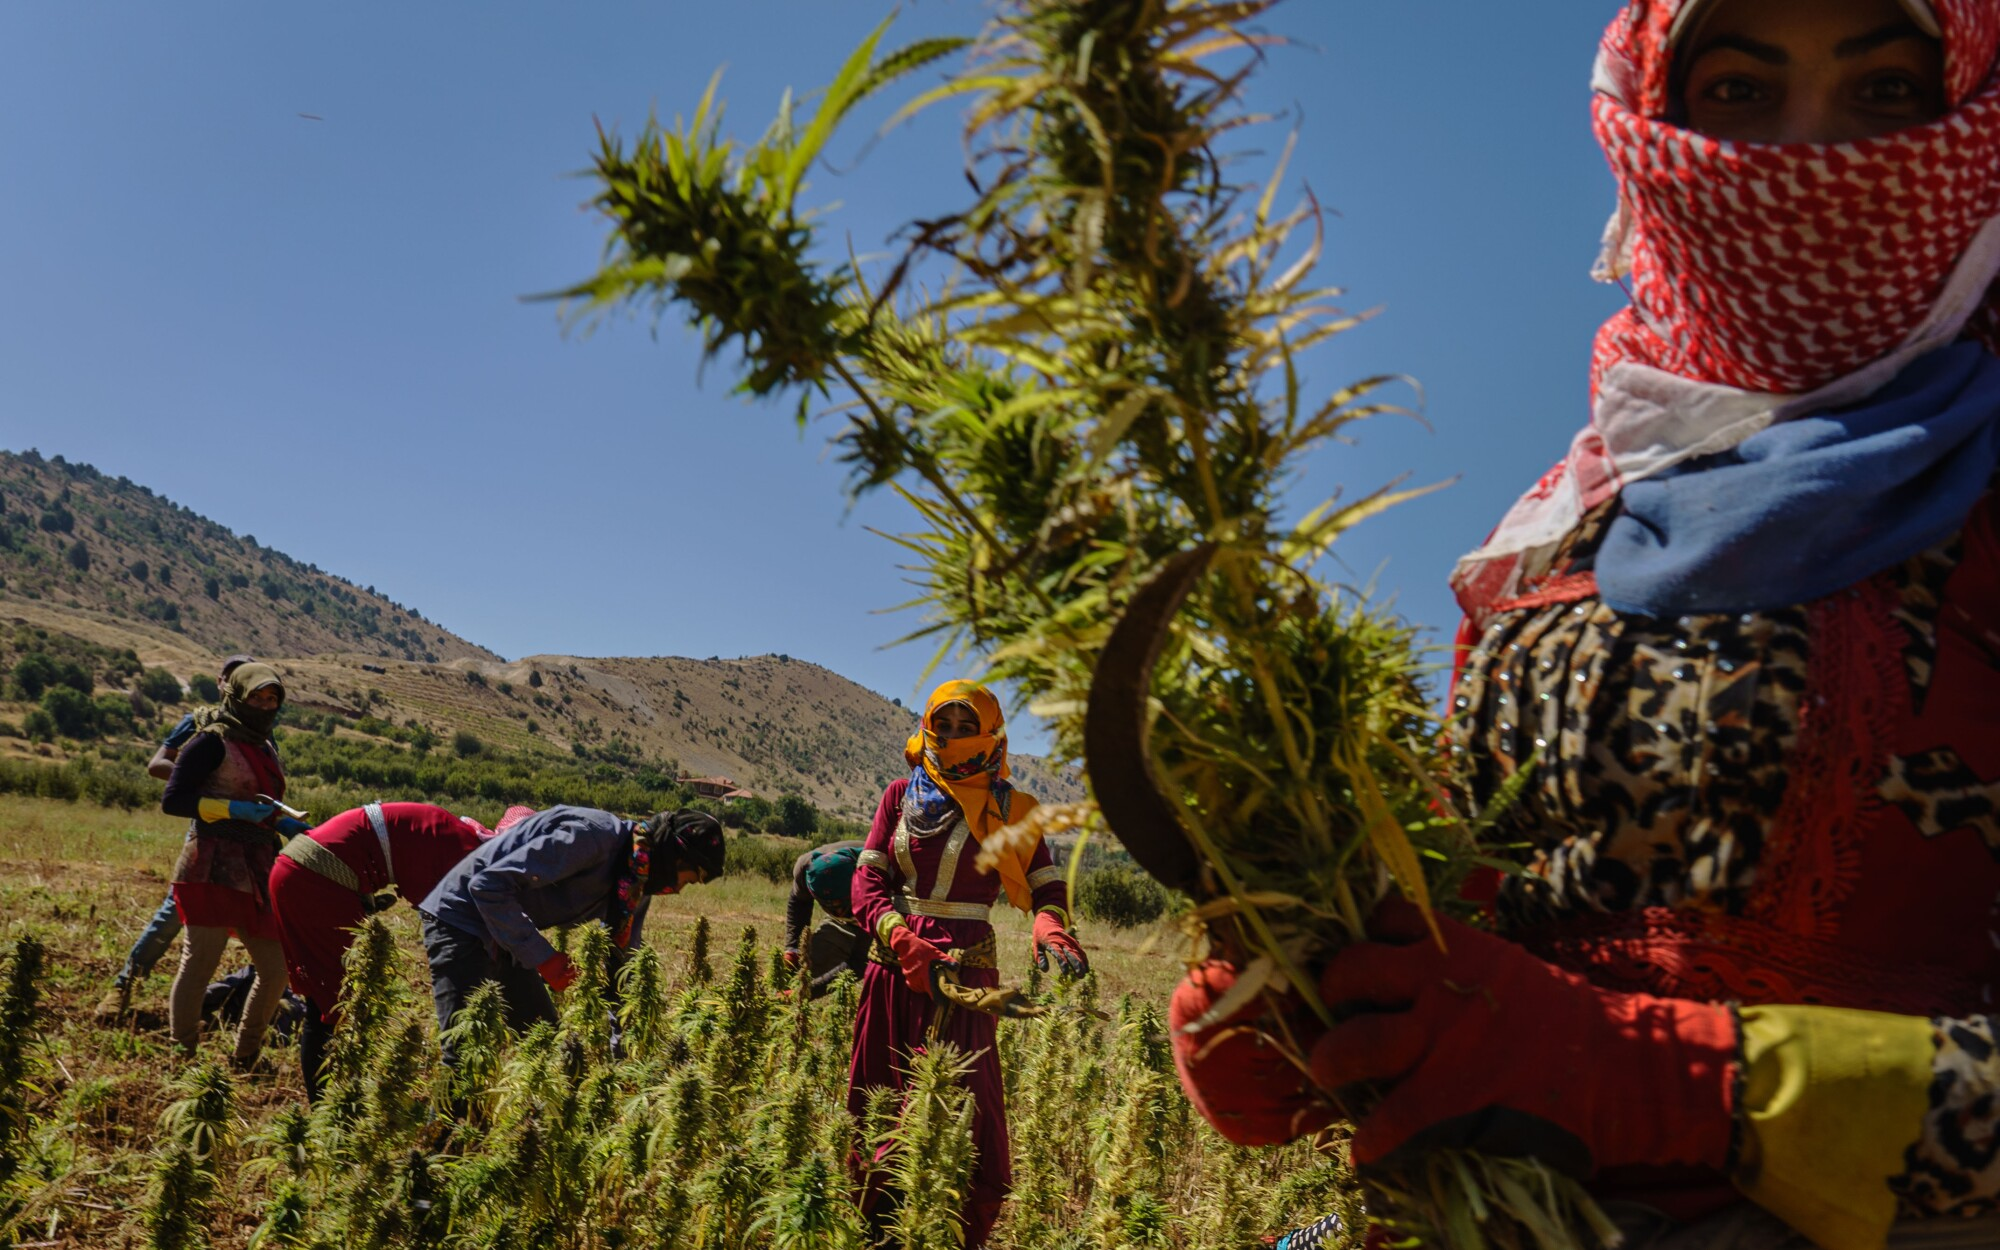 Armed with sickles, farmworkers harvest cannabis in Yammouneh, Lebanon.